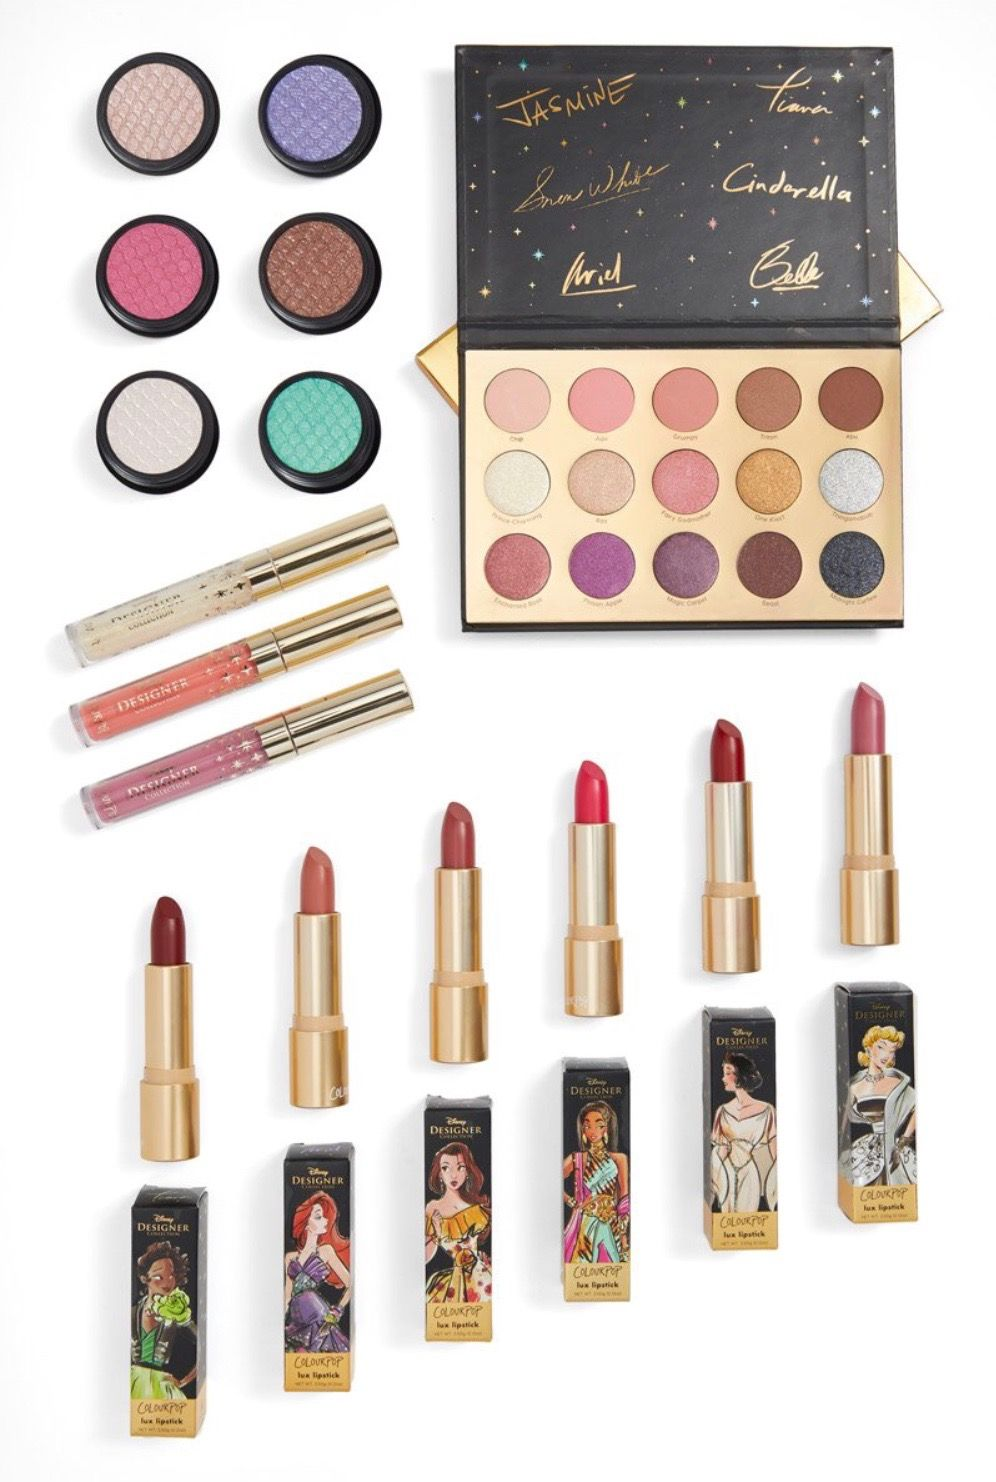 Colourpop x Disney Beauty And The Beast Belle Bundle by Colourpop #22